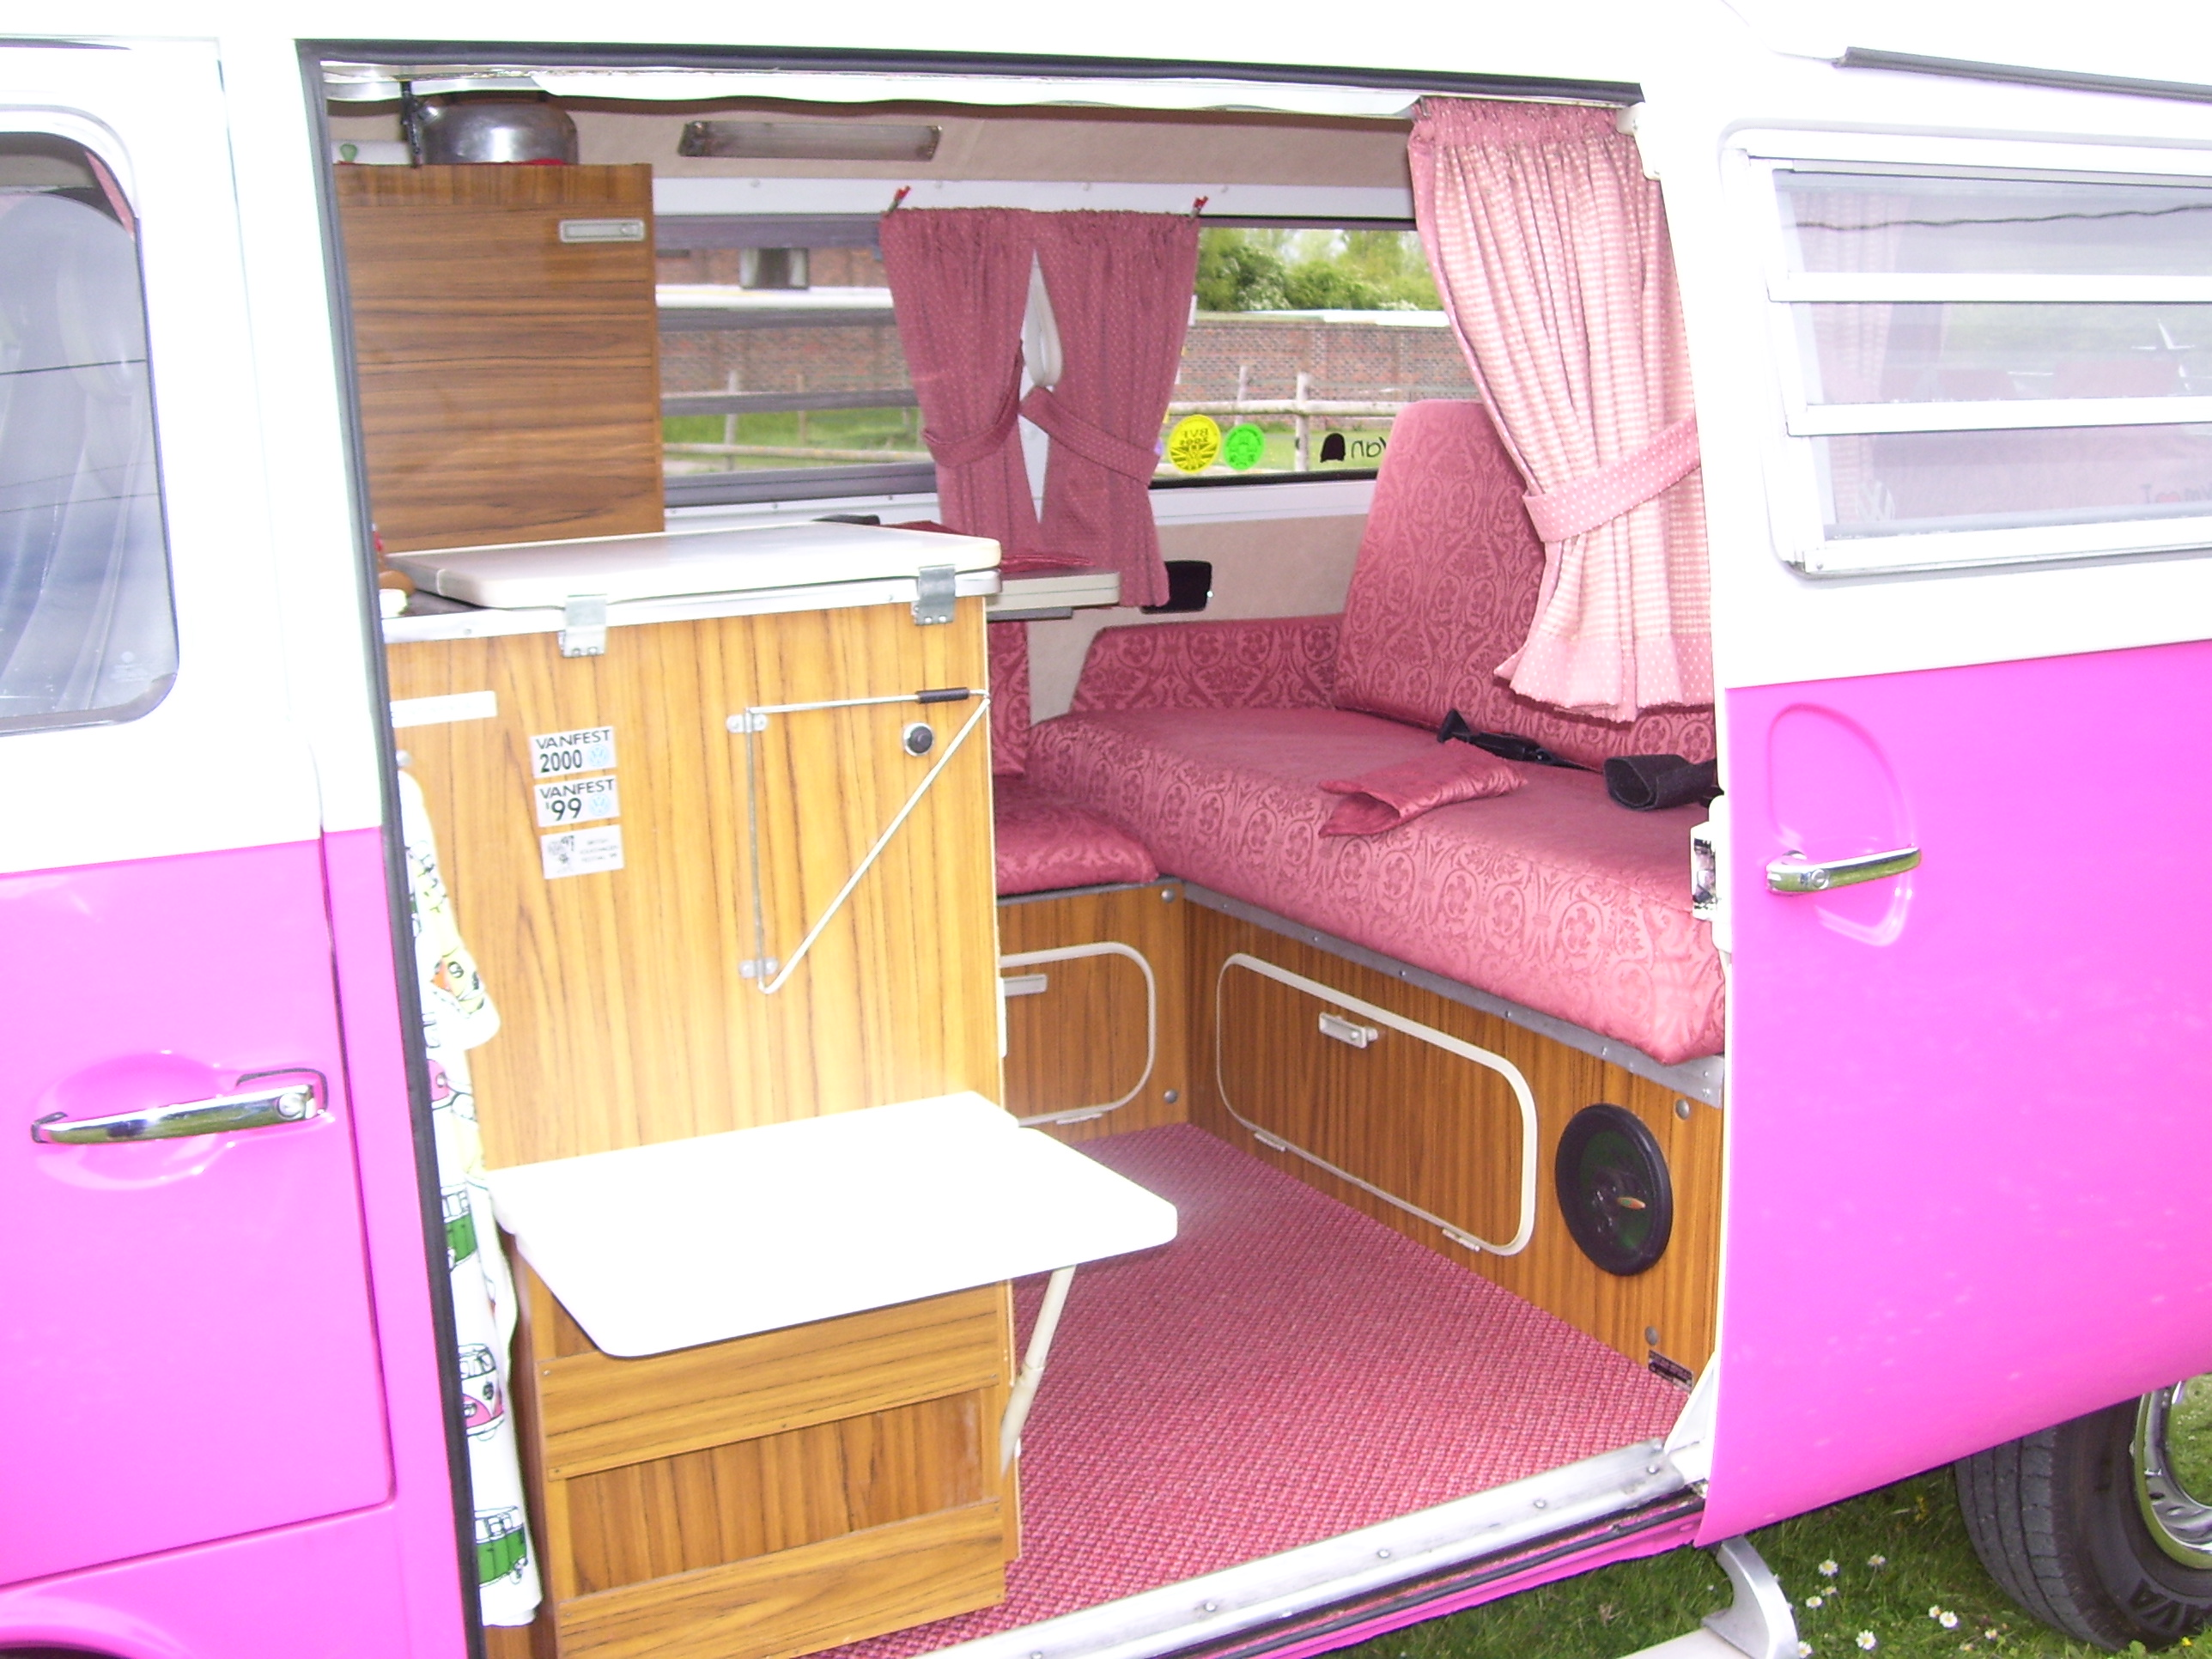 d4697c1ba6 Just Arrived Customers van For sale. 1972 RHD UK 4 berth Westfalia